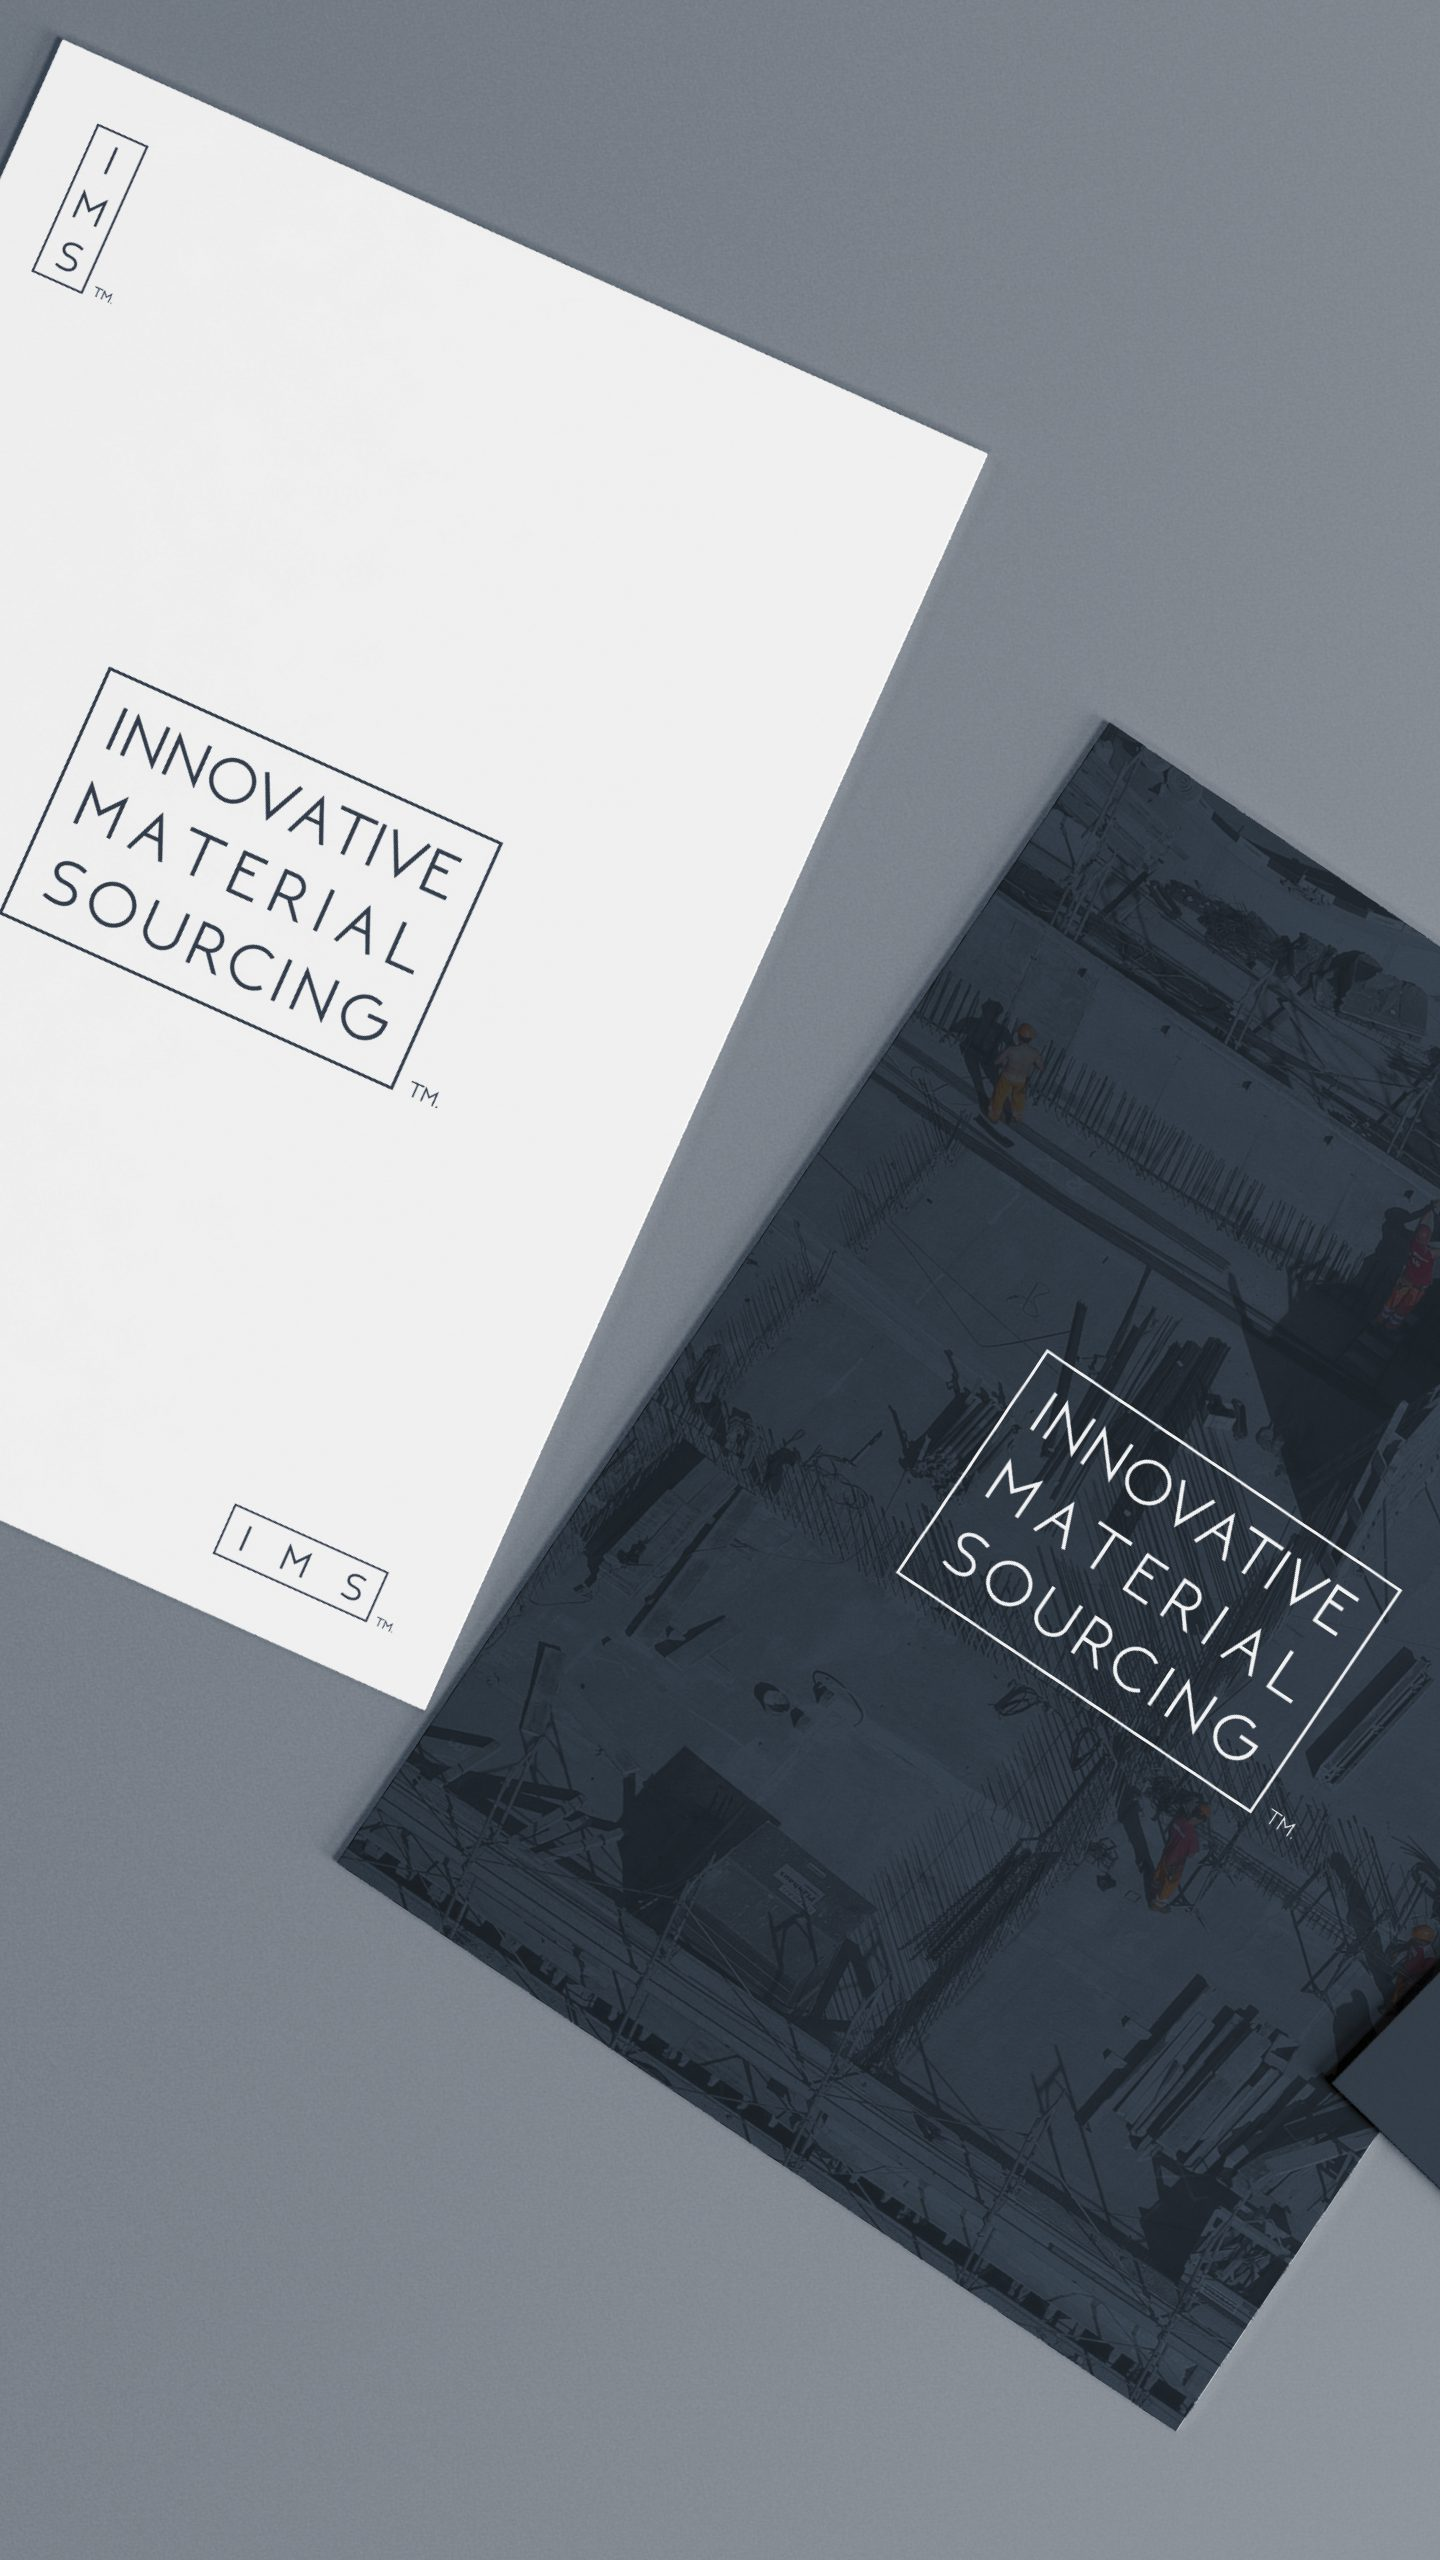 Innovative Material Sourcing